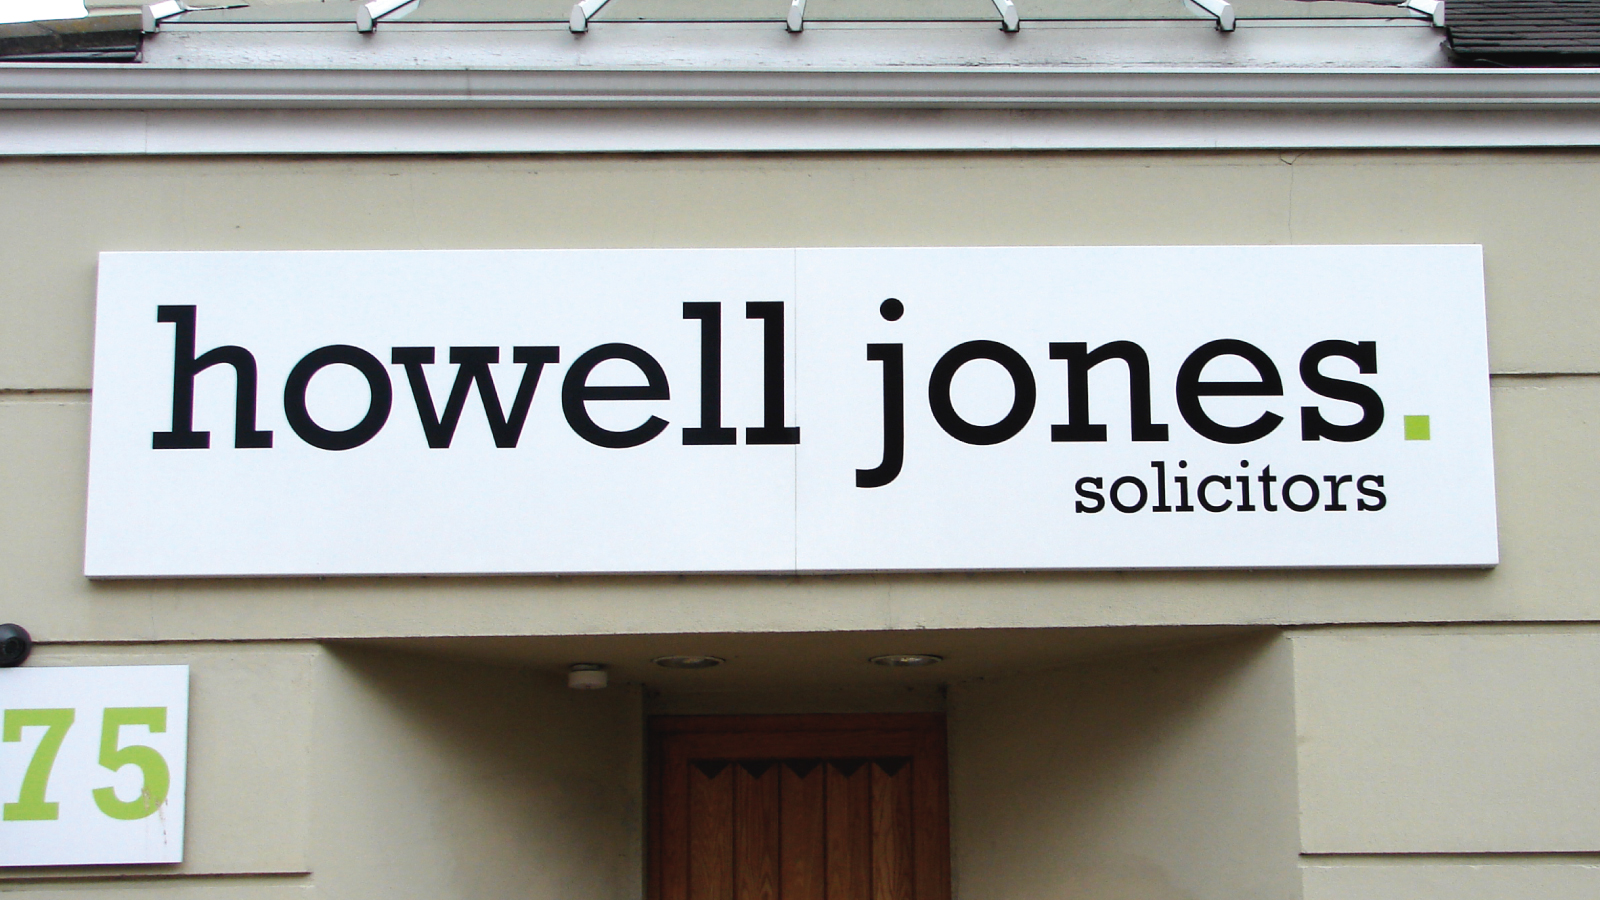 Surrey brand agency for Howell Jones signage